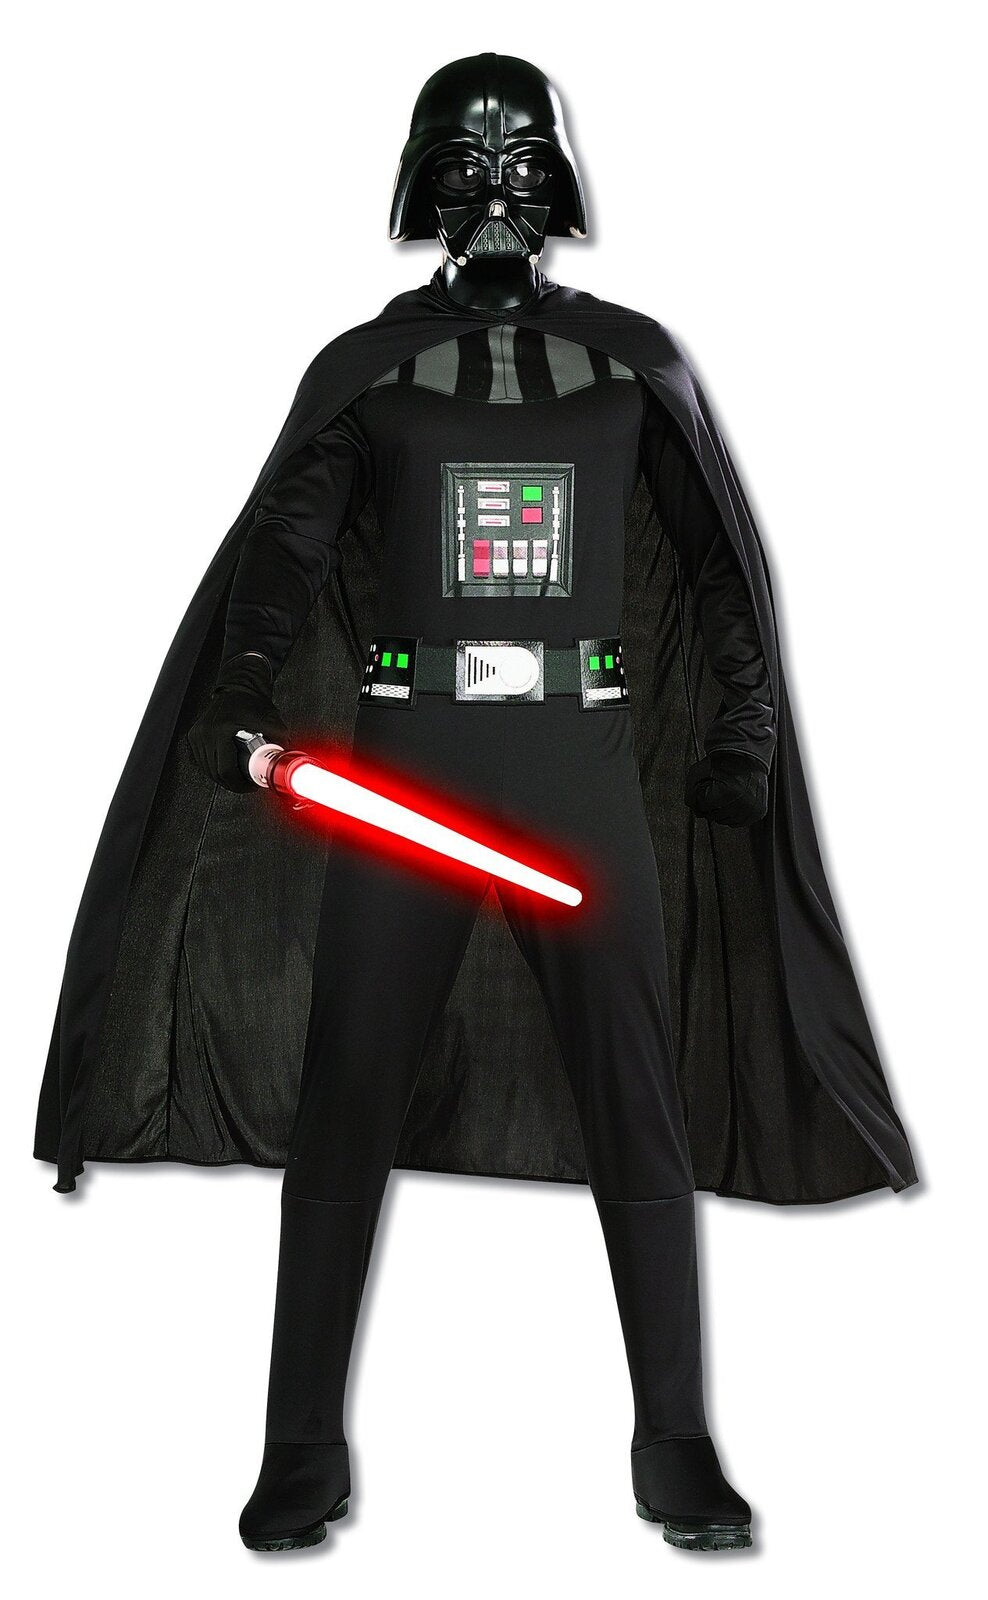 Darth Vader Costume - Buy Online Only